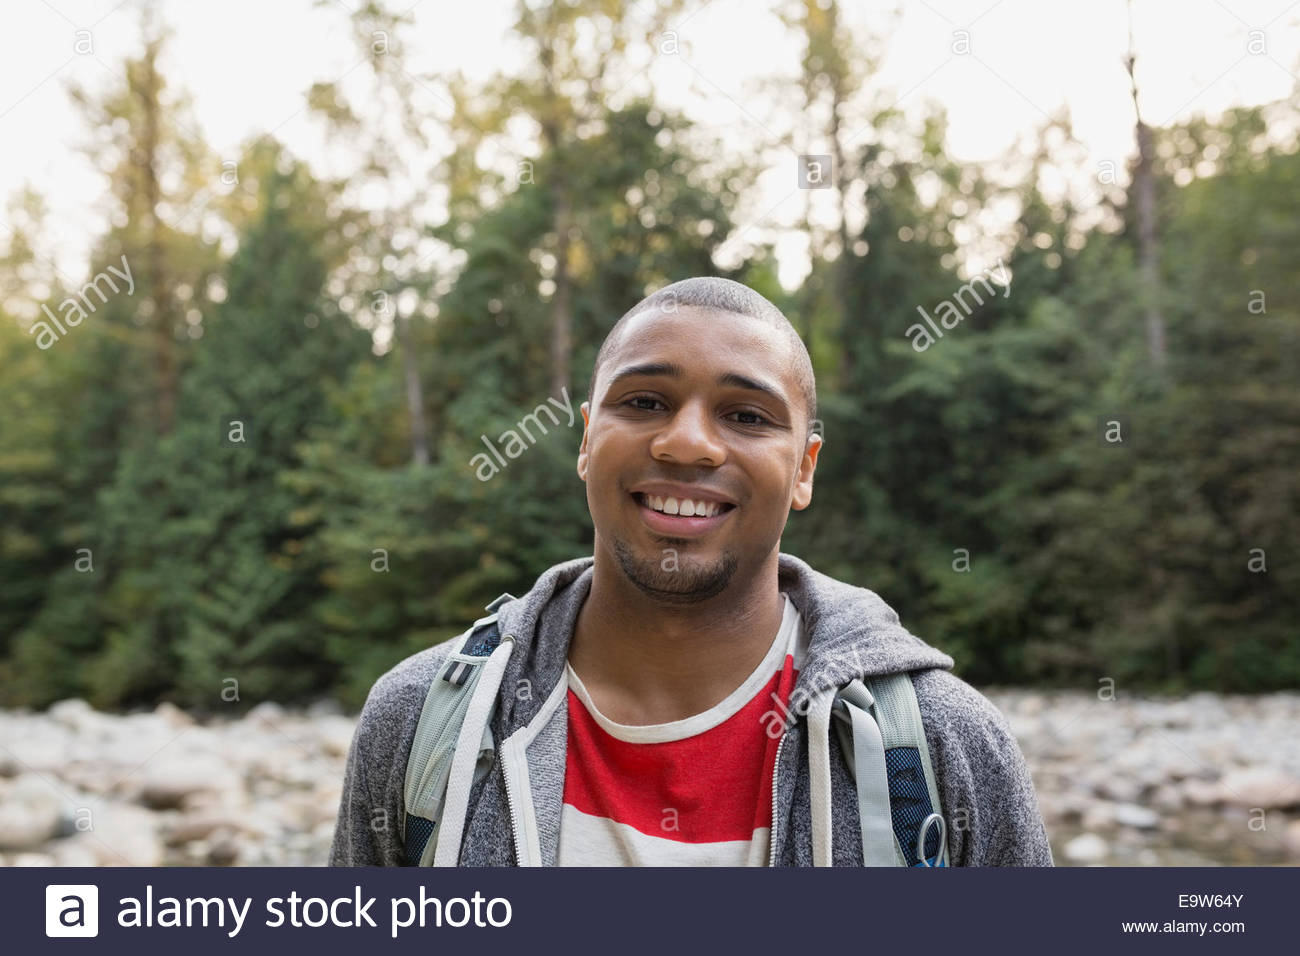 Portrait of smiling man in woods Photo Stock